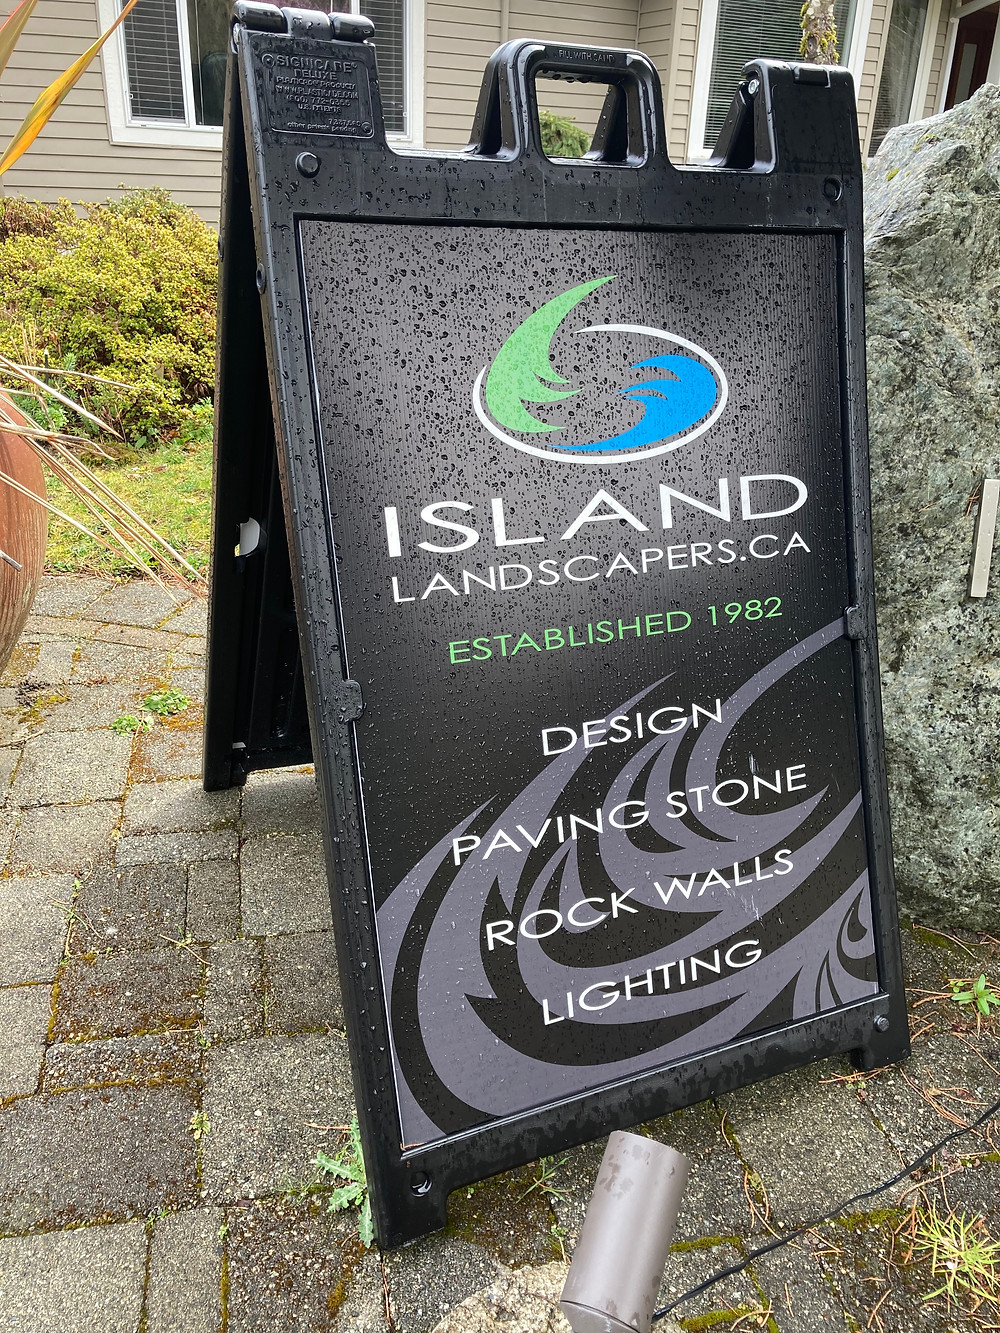 Island Landscapers Inc. sign in black featuring design, paving stone and rock walls.